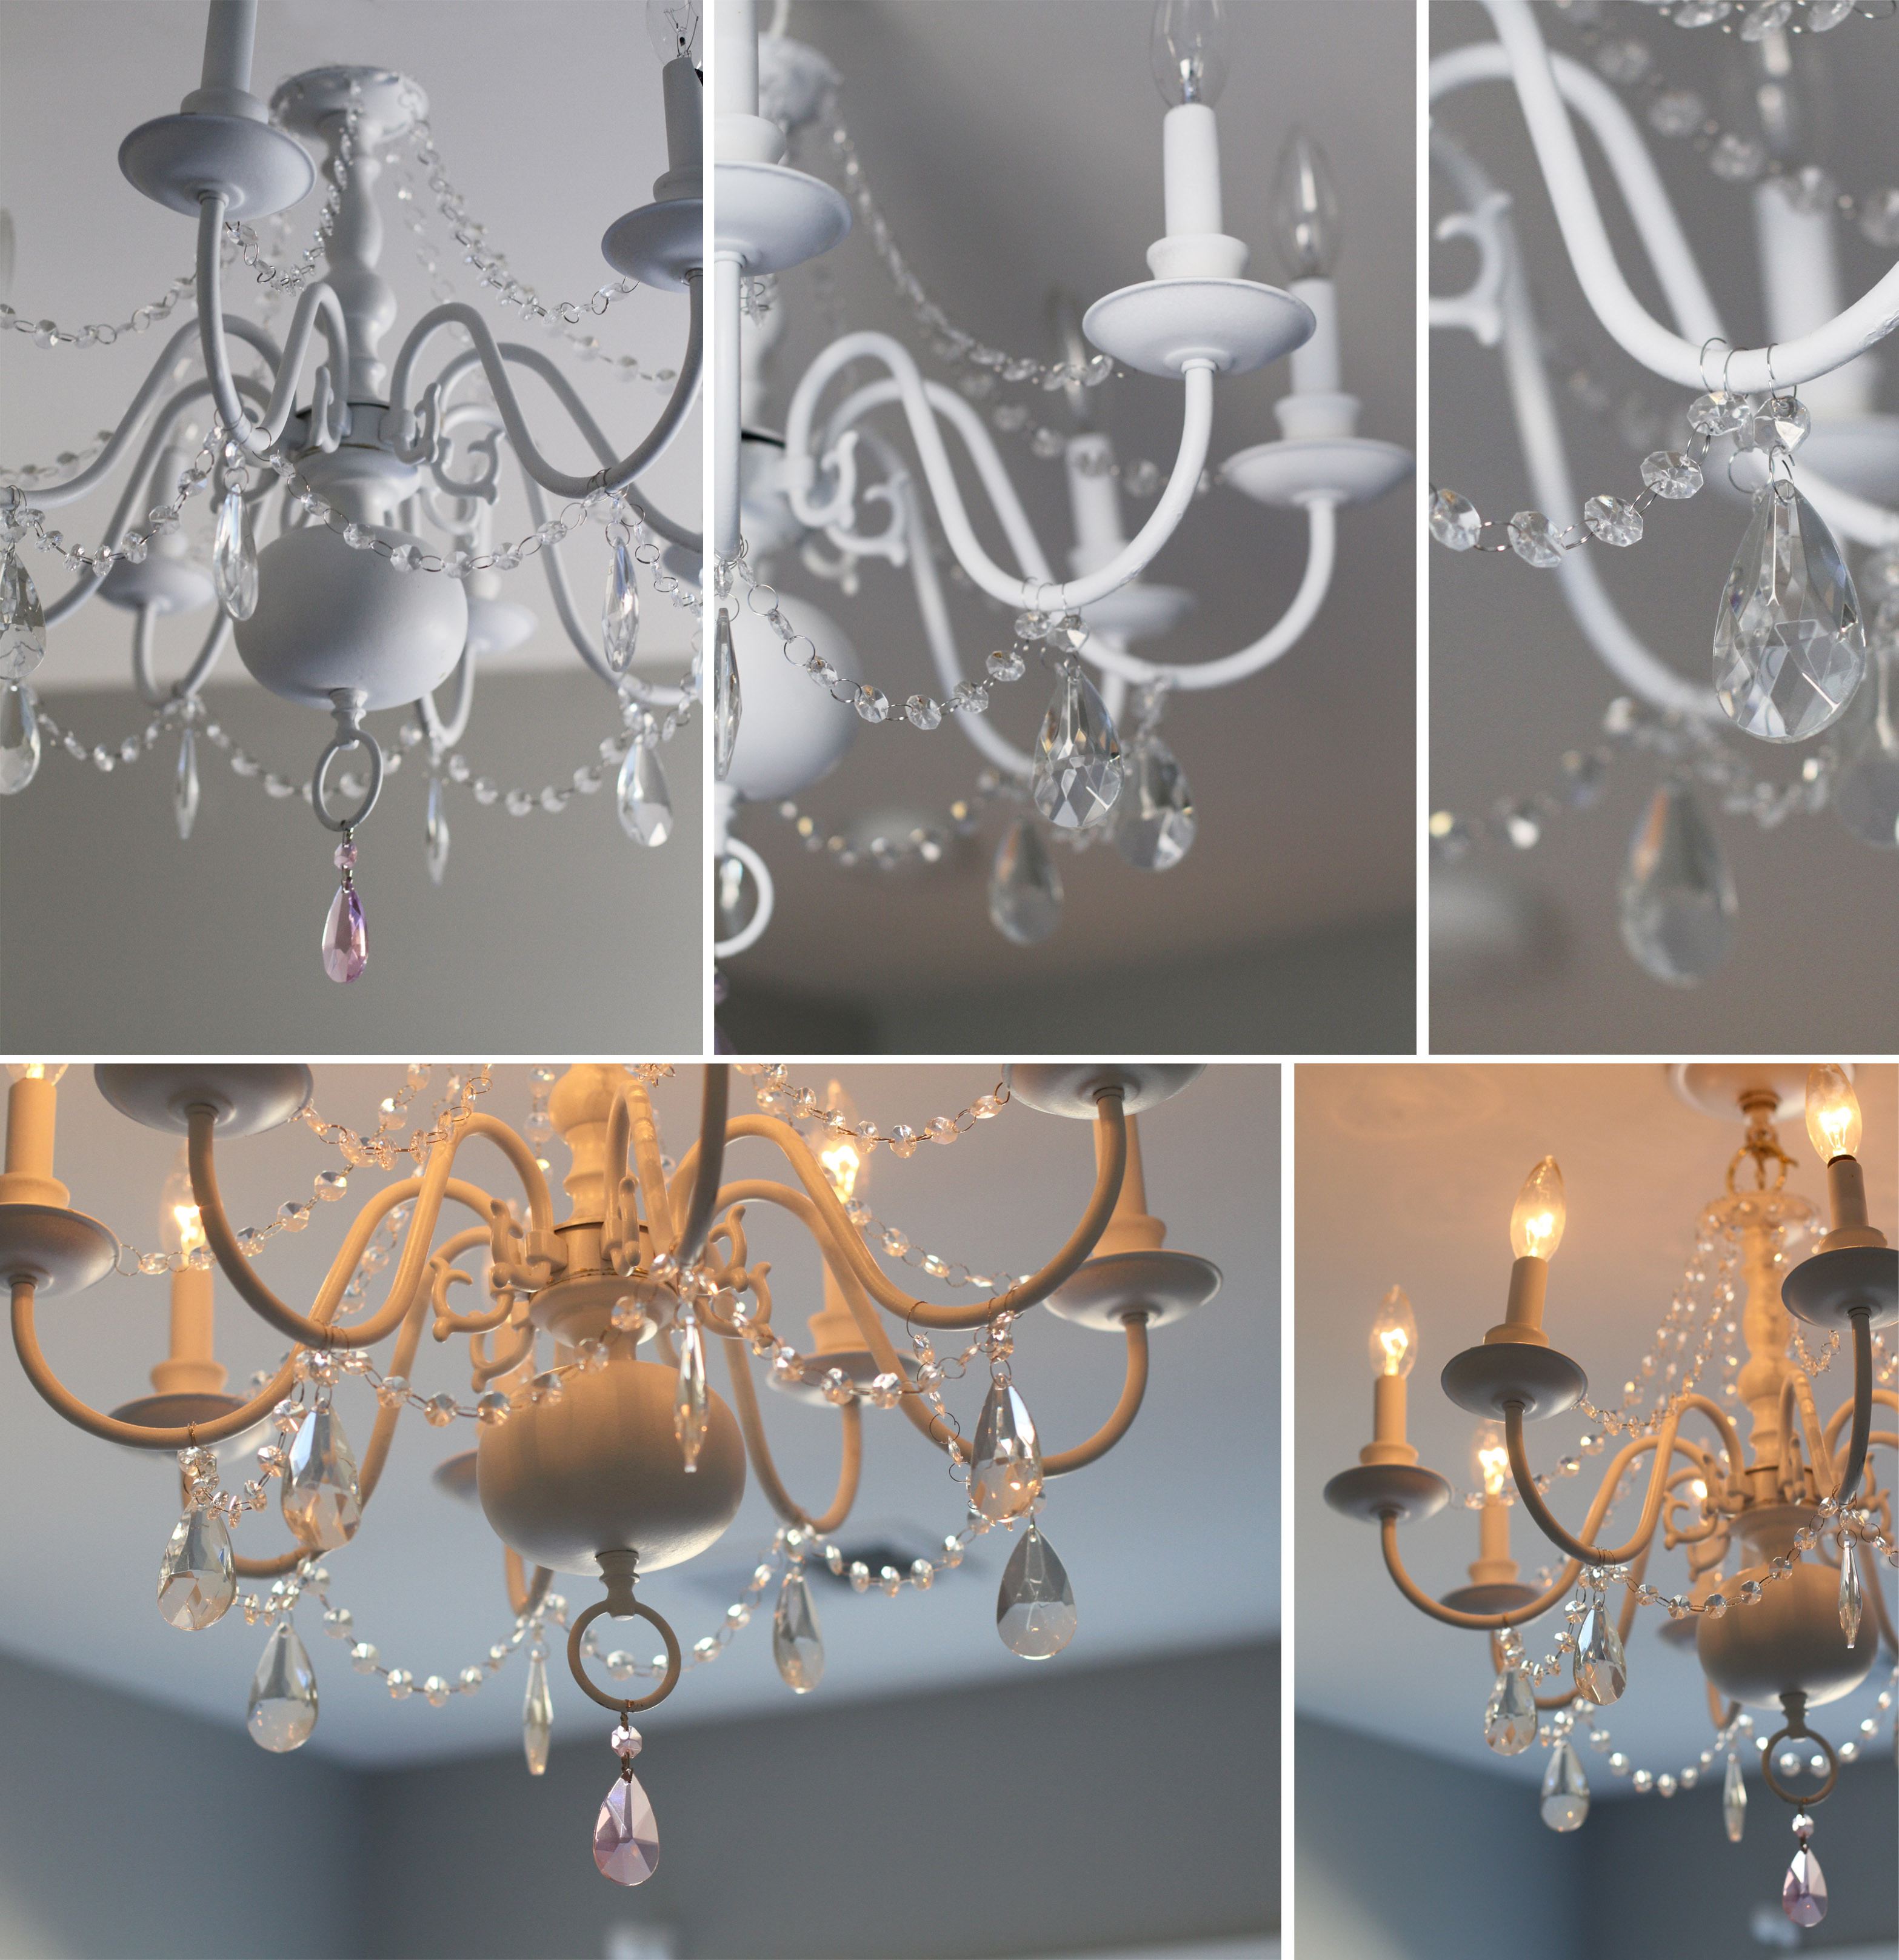 Best ideas about Chandeliers For Kids Room . Save or Pin Chandeliers For Kids Room Otbsiu Lights and Lamps Now.